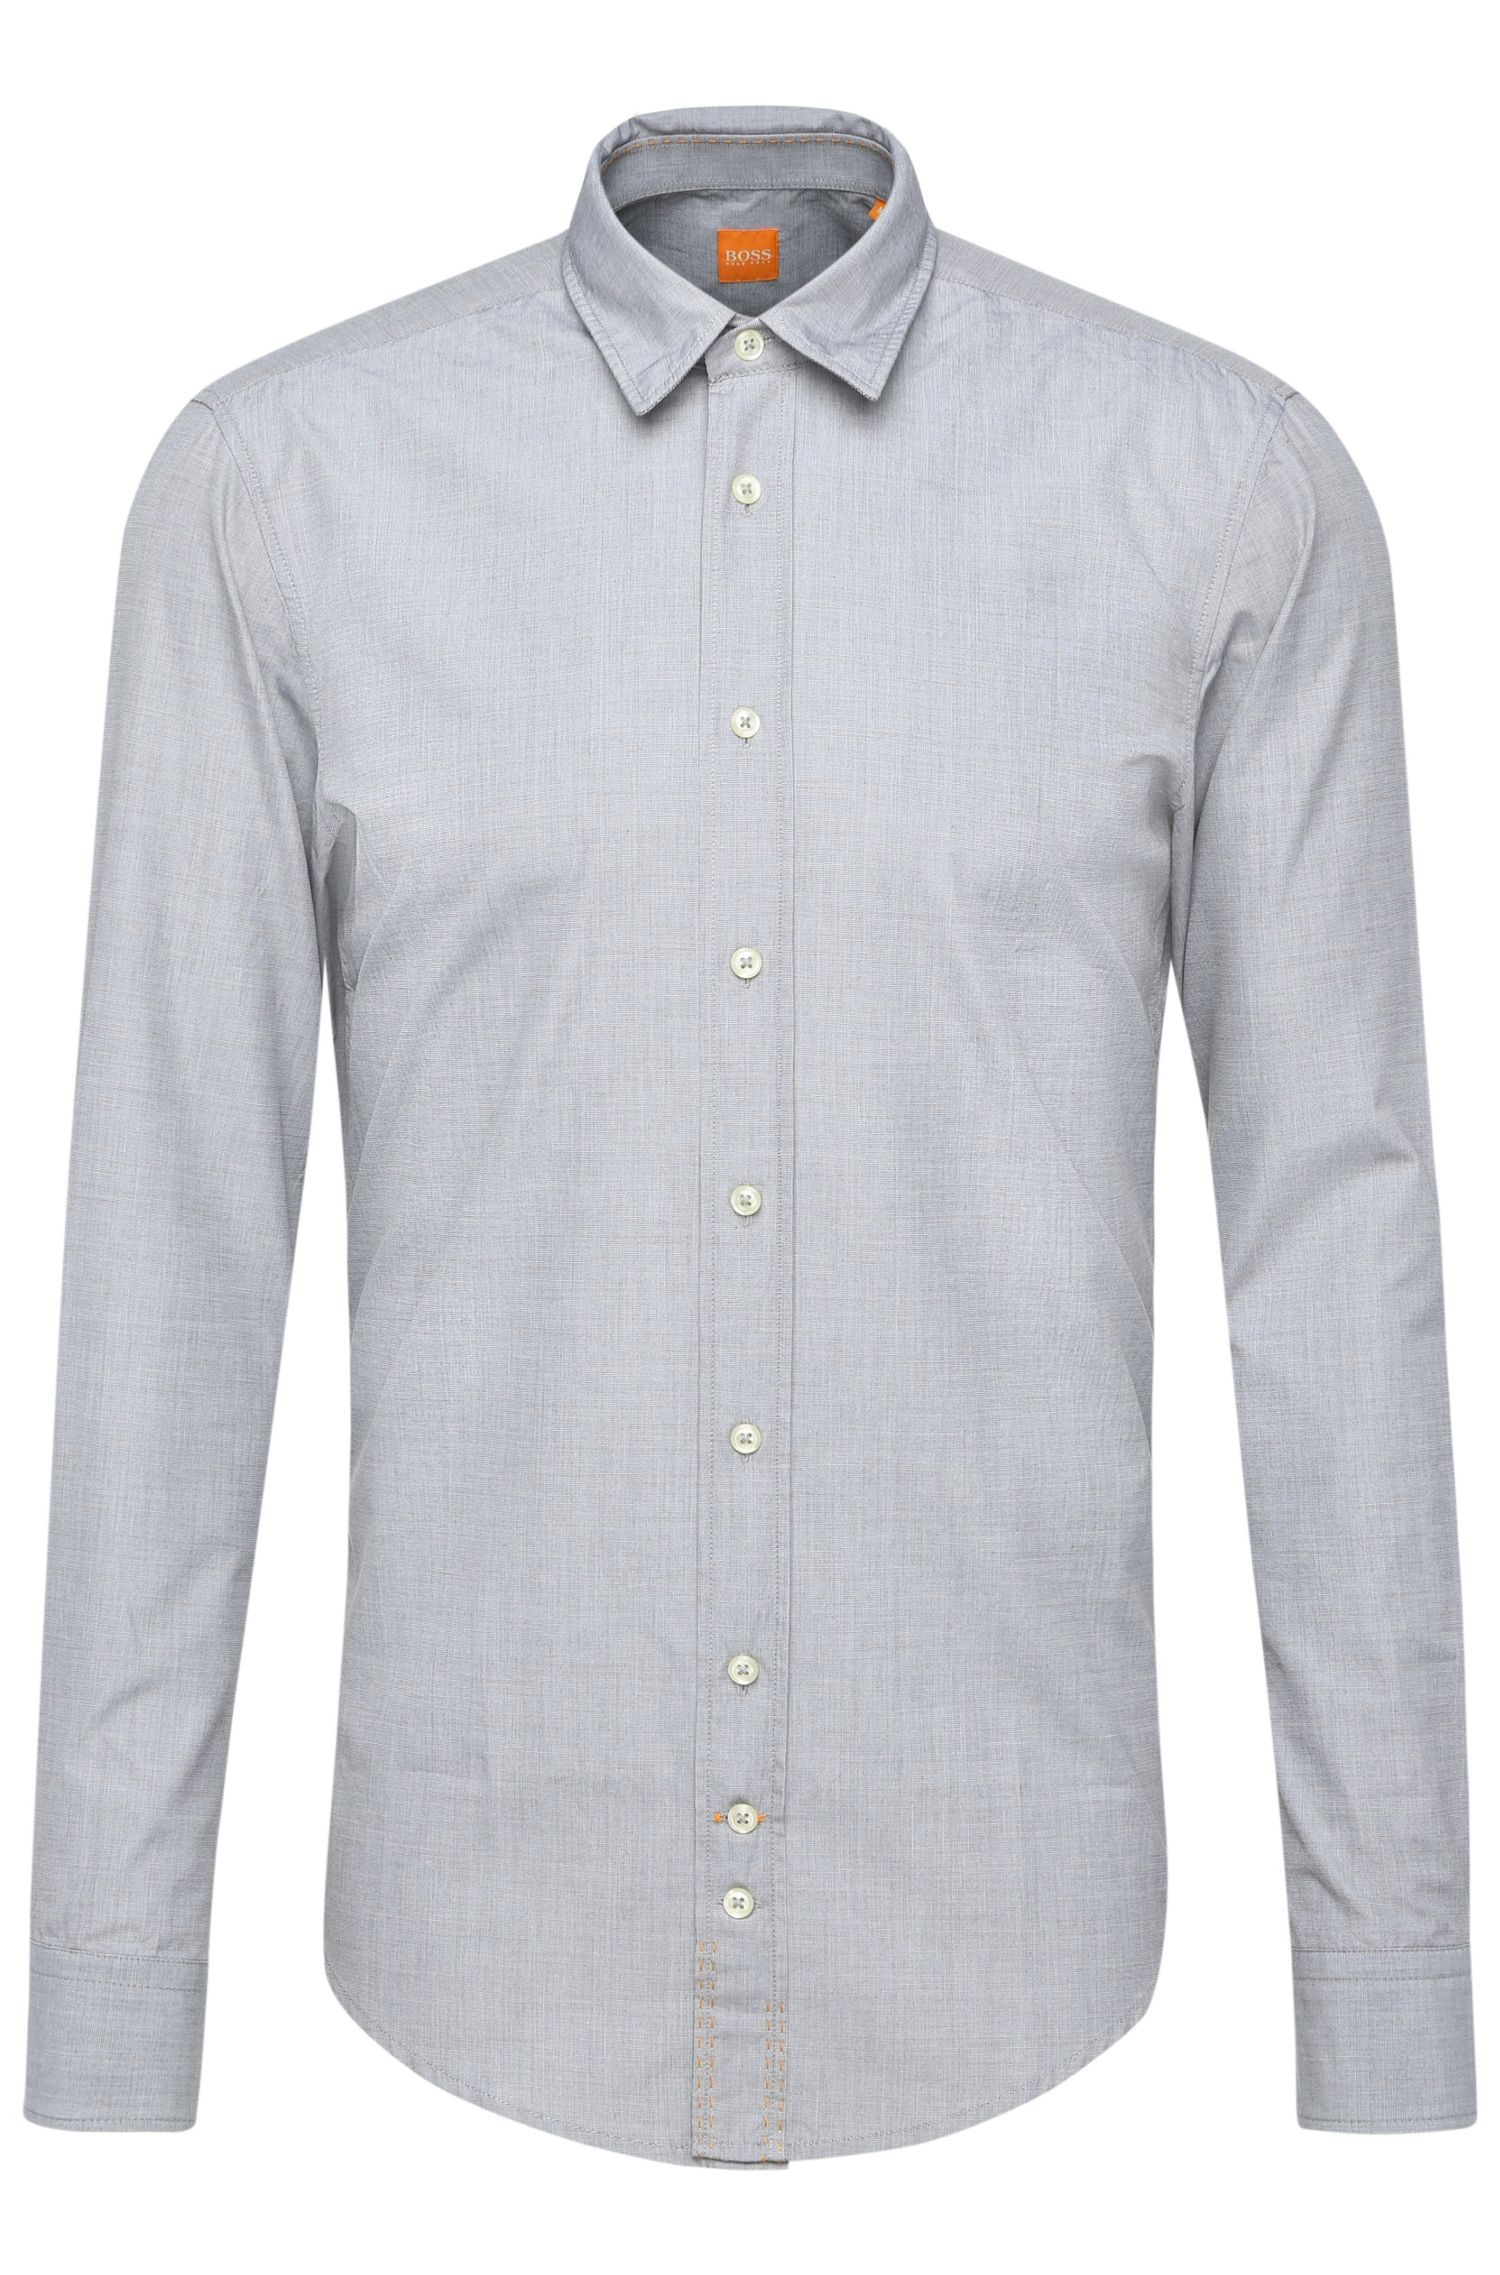 Camisa regular fit de algodón lavado